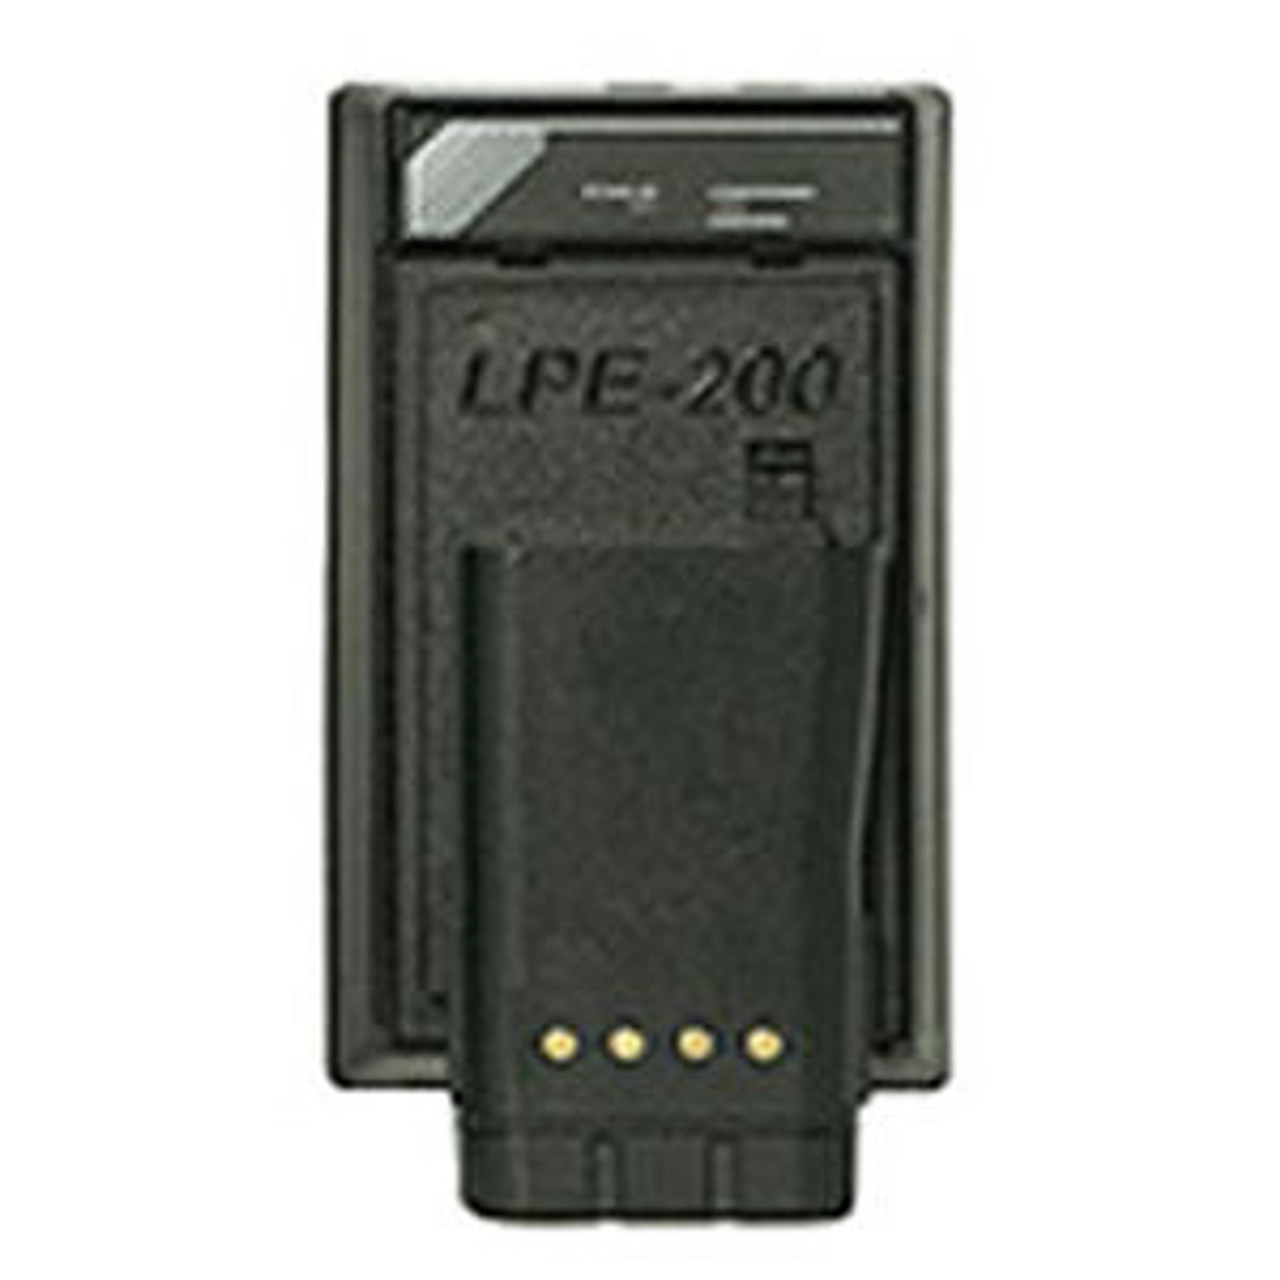 AdvanceTec Single Slot Conditioning Charger For GE / Ericsson 700P Nickel Batteries